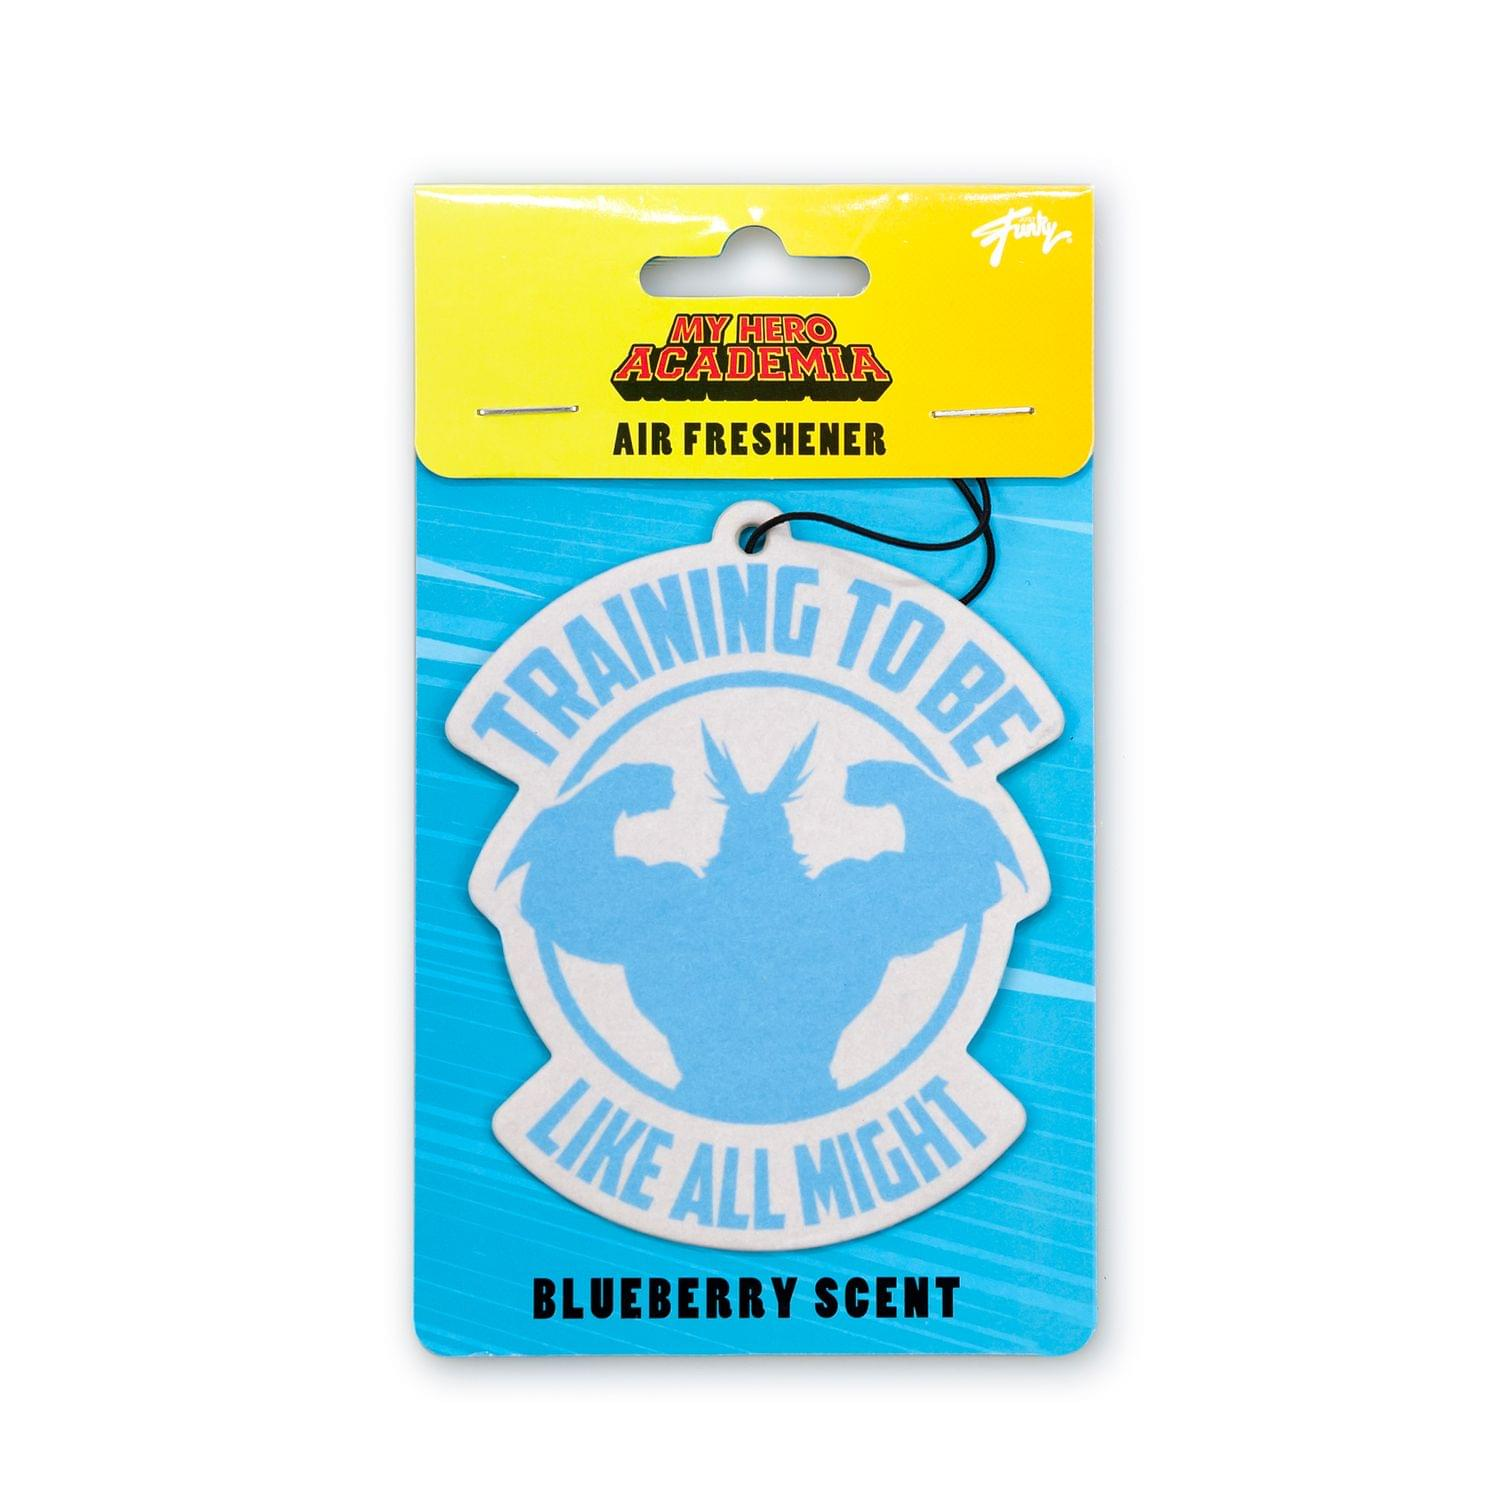 OFFICIAL My Hero Academia Air Freshener | Features All Might | Blueberry Scented